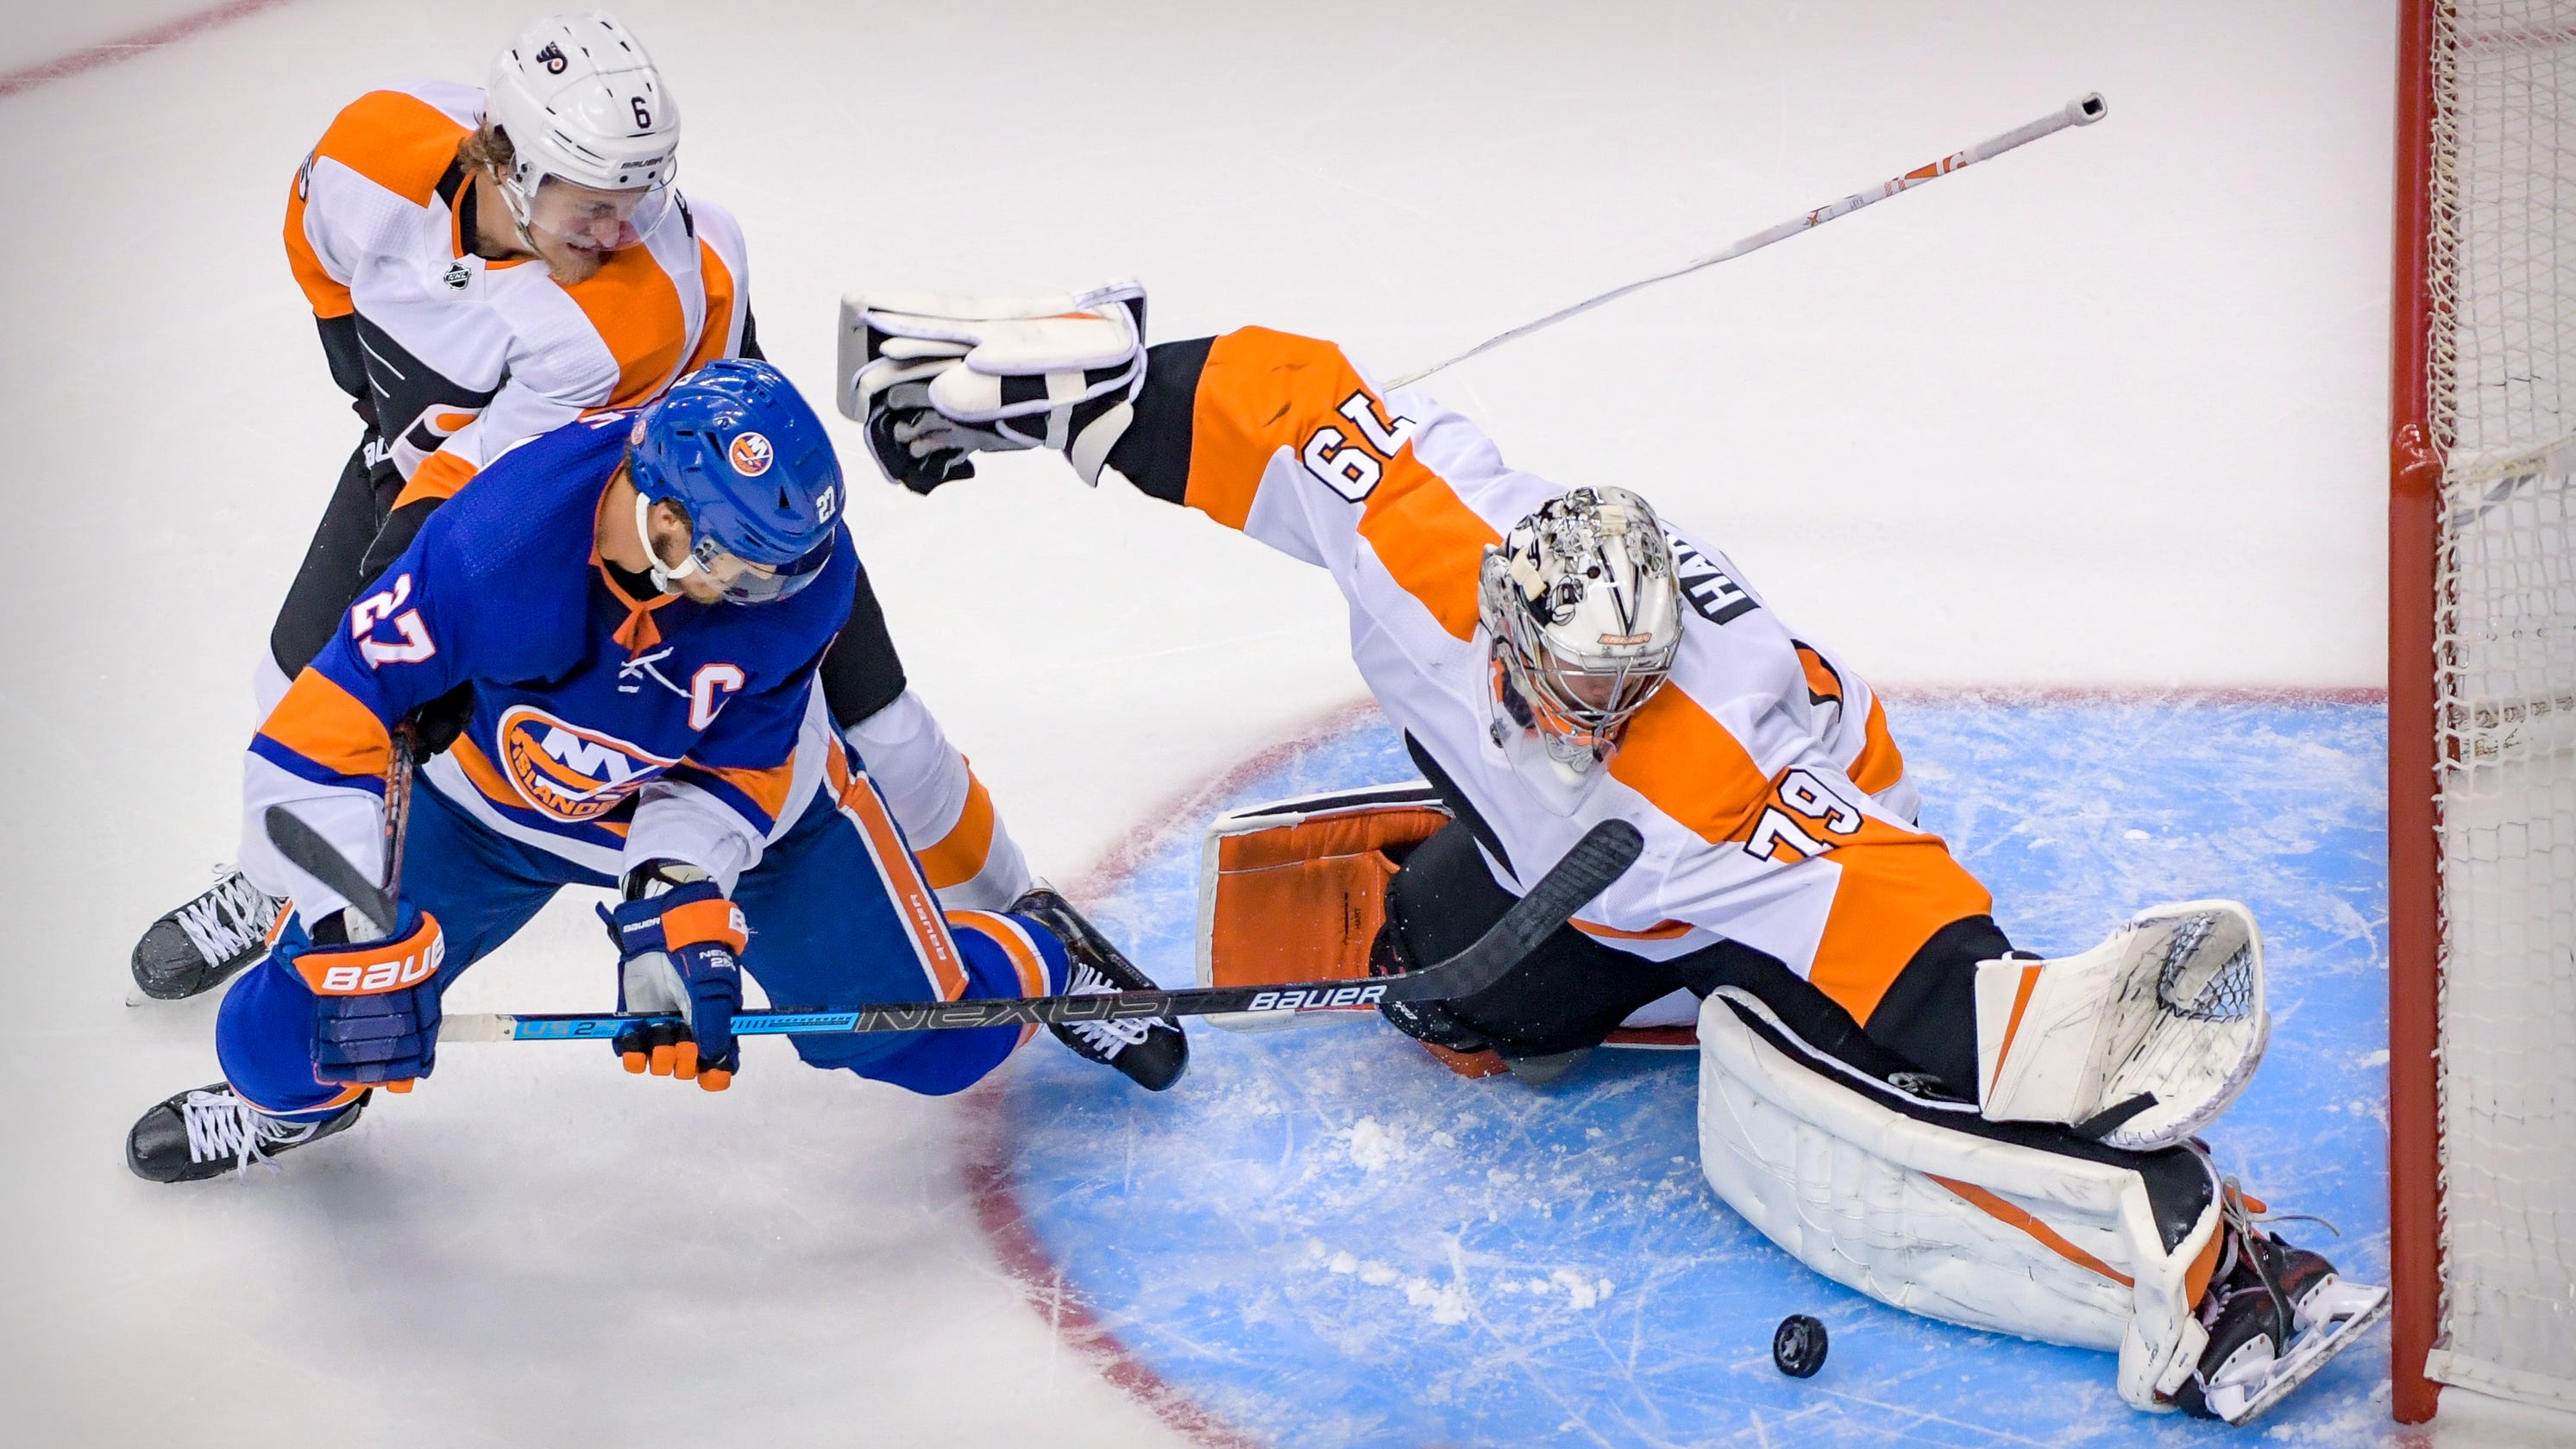 Game 7 predictions: Who wins between Philadelphia Flyers and New York Islanders?